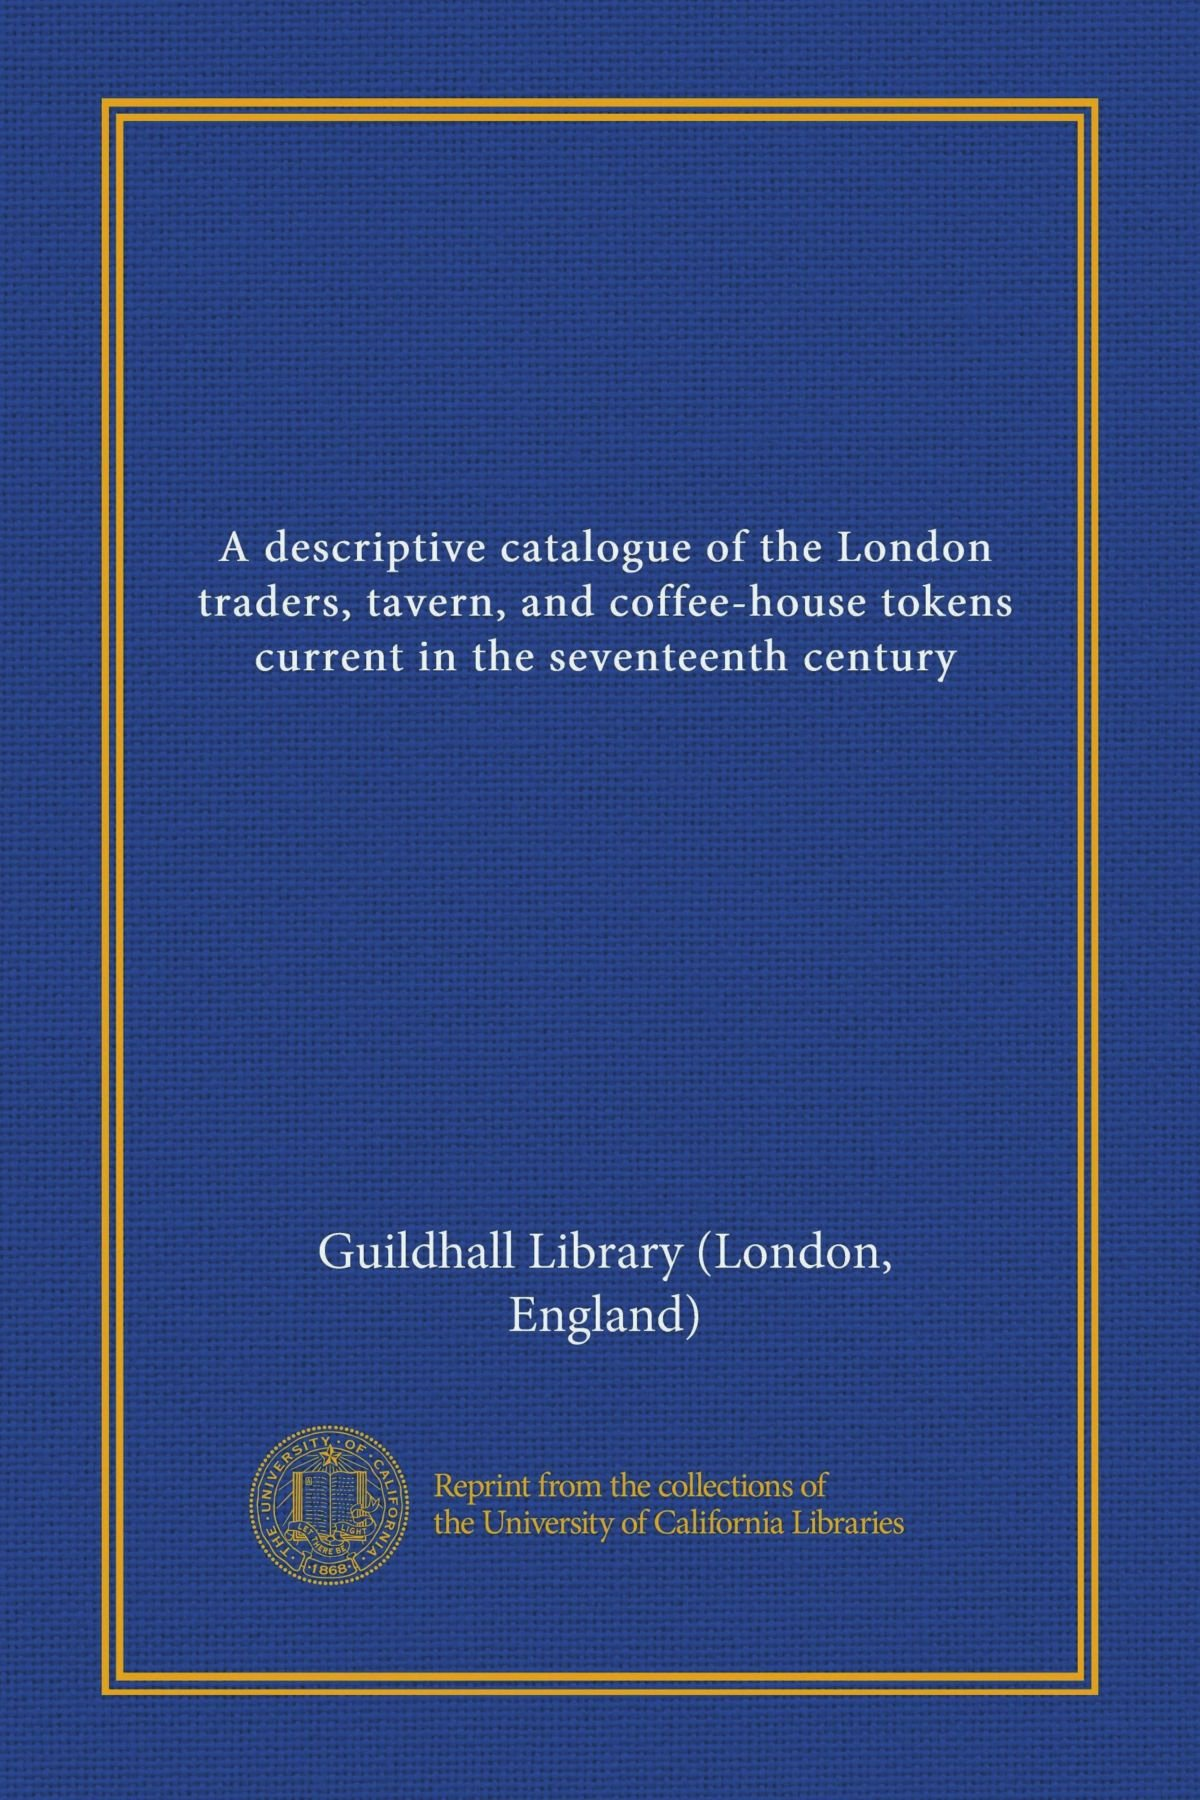 A descriptive catalogue of the London traders, tavern, and coffee-house tokens current in the seventeenth century ebook